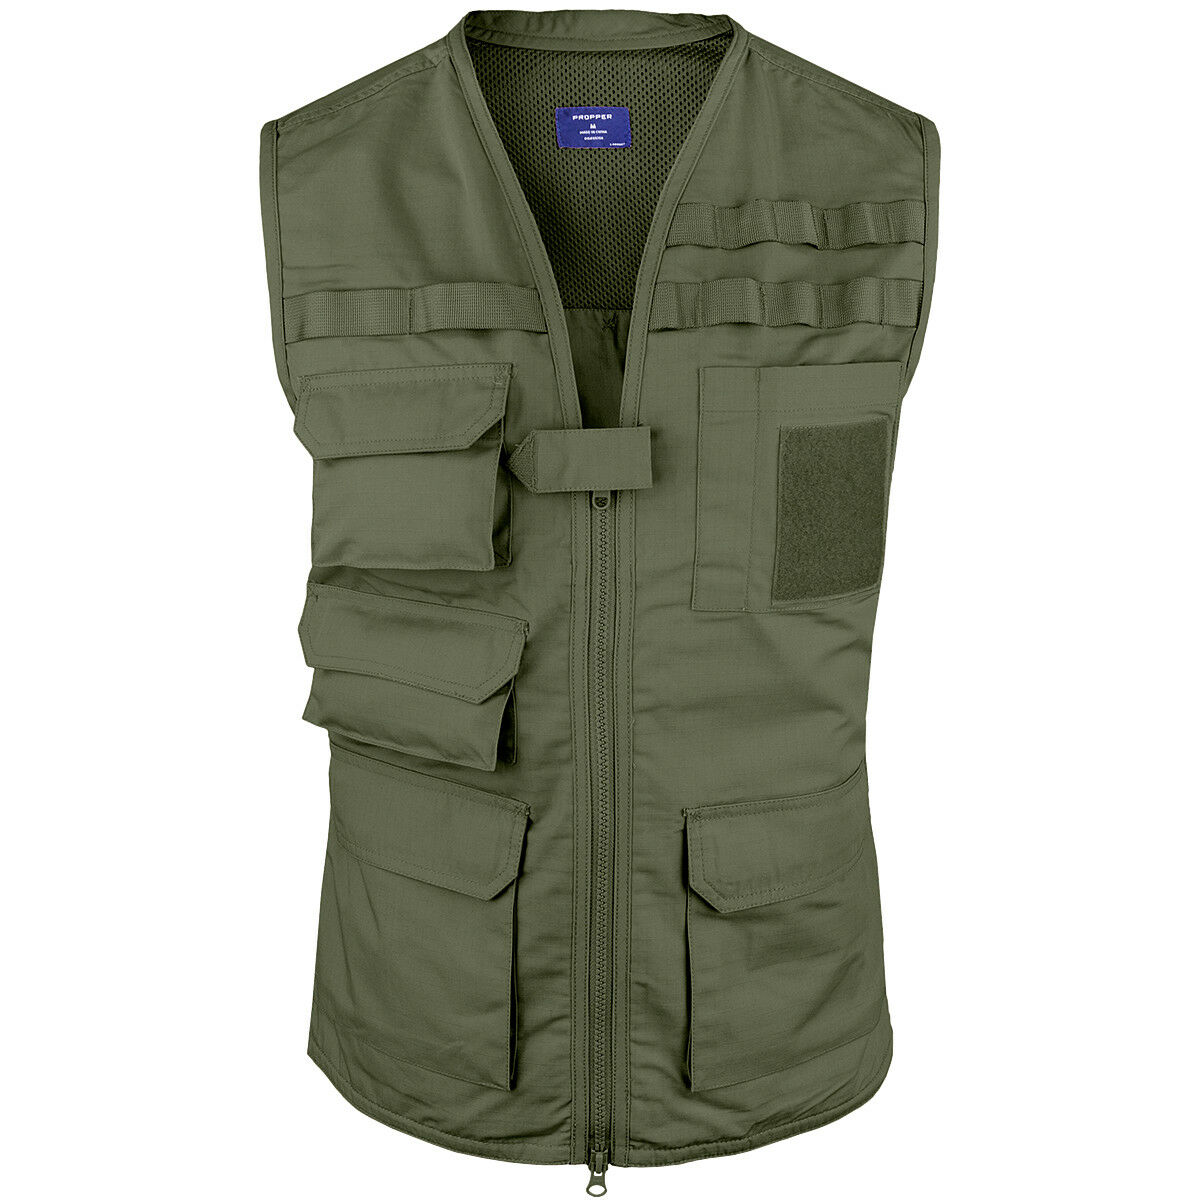 Propper Tactical Vest Airsoft Paintball Fishing Hiking Ripstop Travel Mens Olive